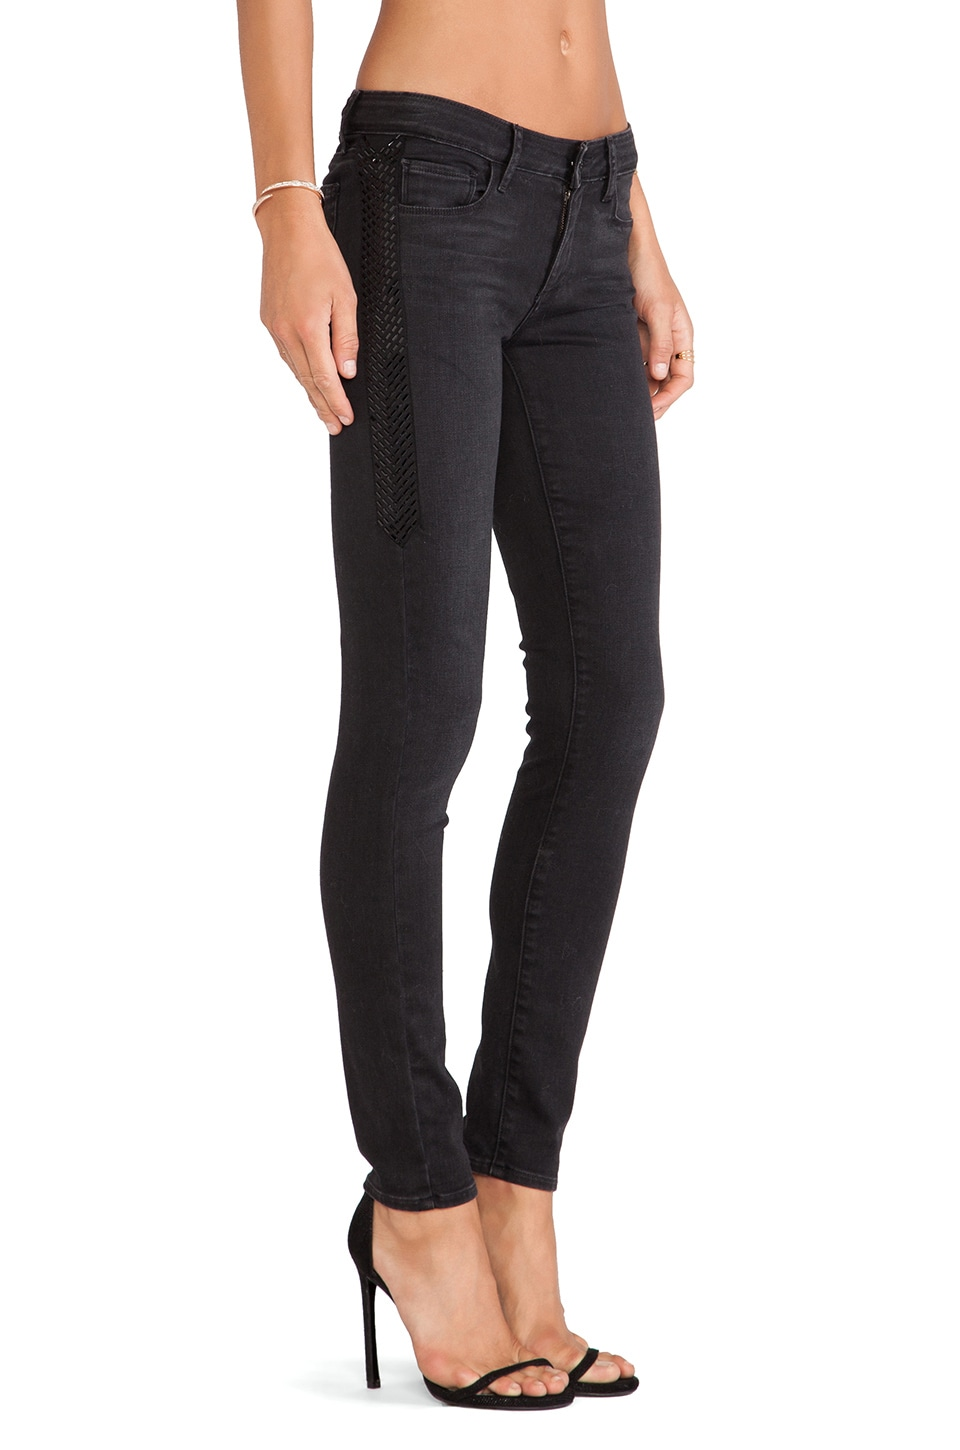 Paige Denim Pieced Verdugo Dart Skinny in Cleo Dart Embellished